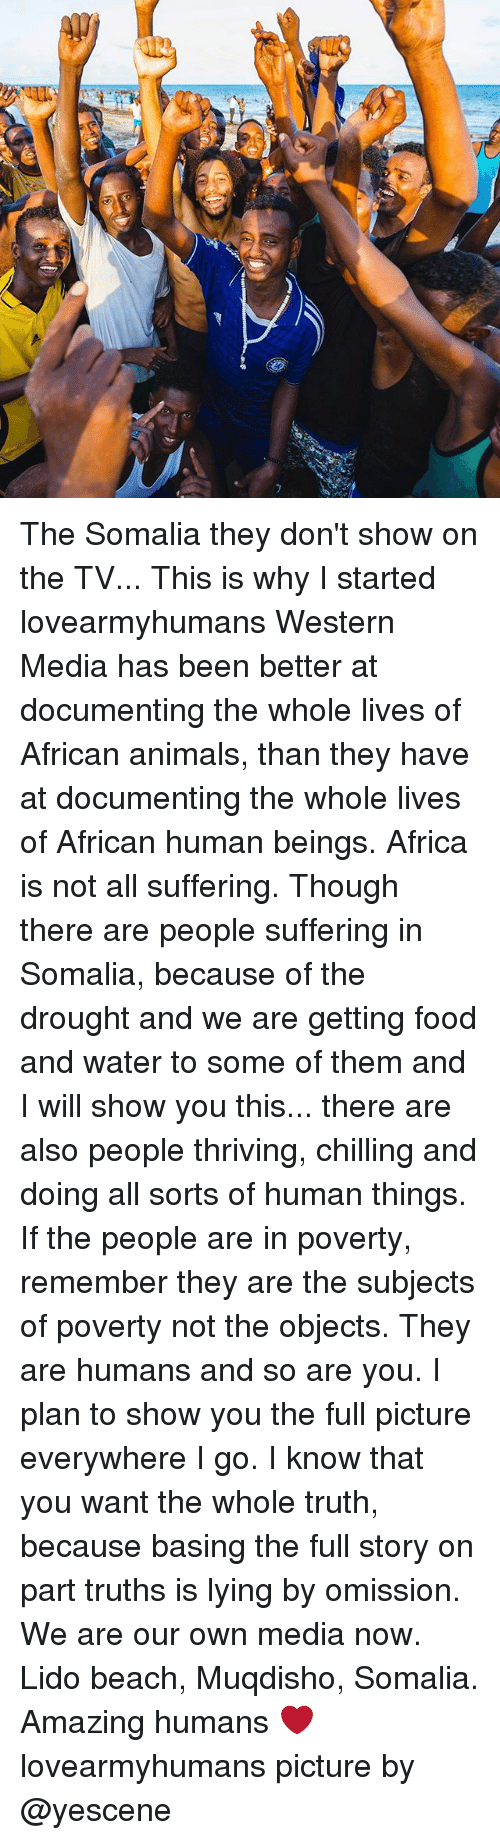 Africa, Animals, and Food: | eeeeeeeee Siam The Somalia they don't show on the TV... This is why I started lovearmyhumans Western Media has been better at documenting the whole lives of African animals, than they have at documenting the whole lives of African human beings. Africa is not all suffering. Though there are people suffering in Somalia, because of the drought and we are getting food and water to some of them and I will show you this... there are also people thriving, chilling and doing all sorts of human things. If the people are in poverty, remember they are the subjects of poverty not the objects. They are humans and so are you. I plan to show you the full picture everywhere I go. I know that you want the whole truth, because basing the full story on part truths is lying by omission. We are our own media now. Lido beach, Muqdisho, Somalia. Amazing humans ❤️ lovearmyhumans picture by @yescene